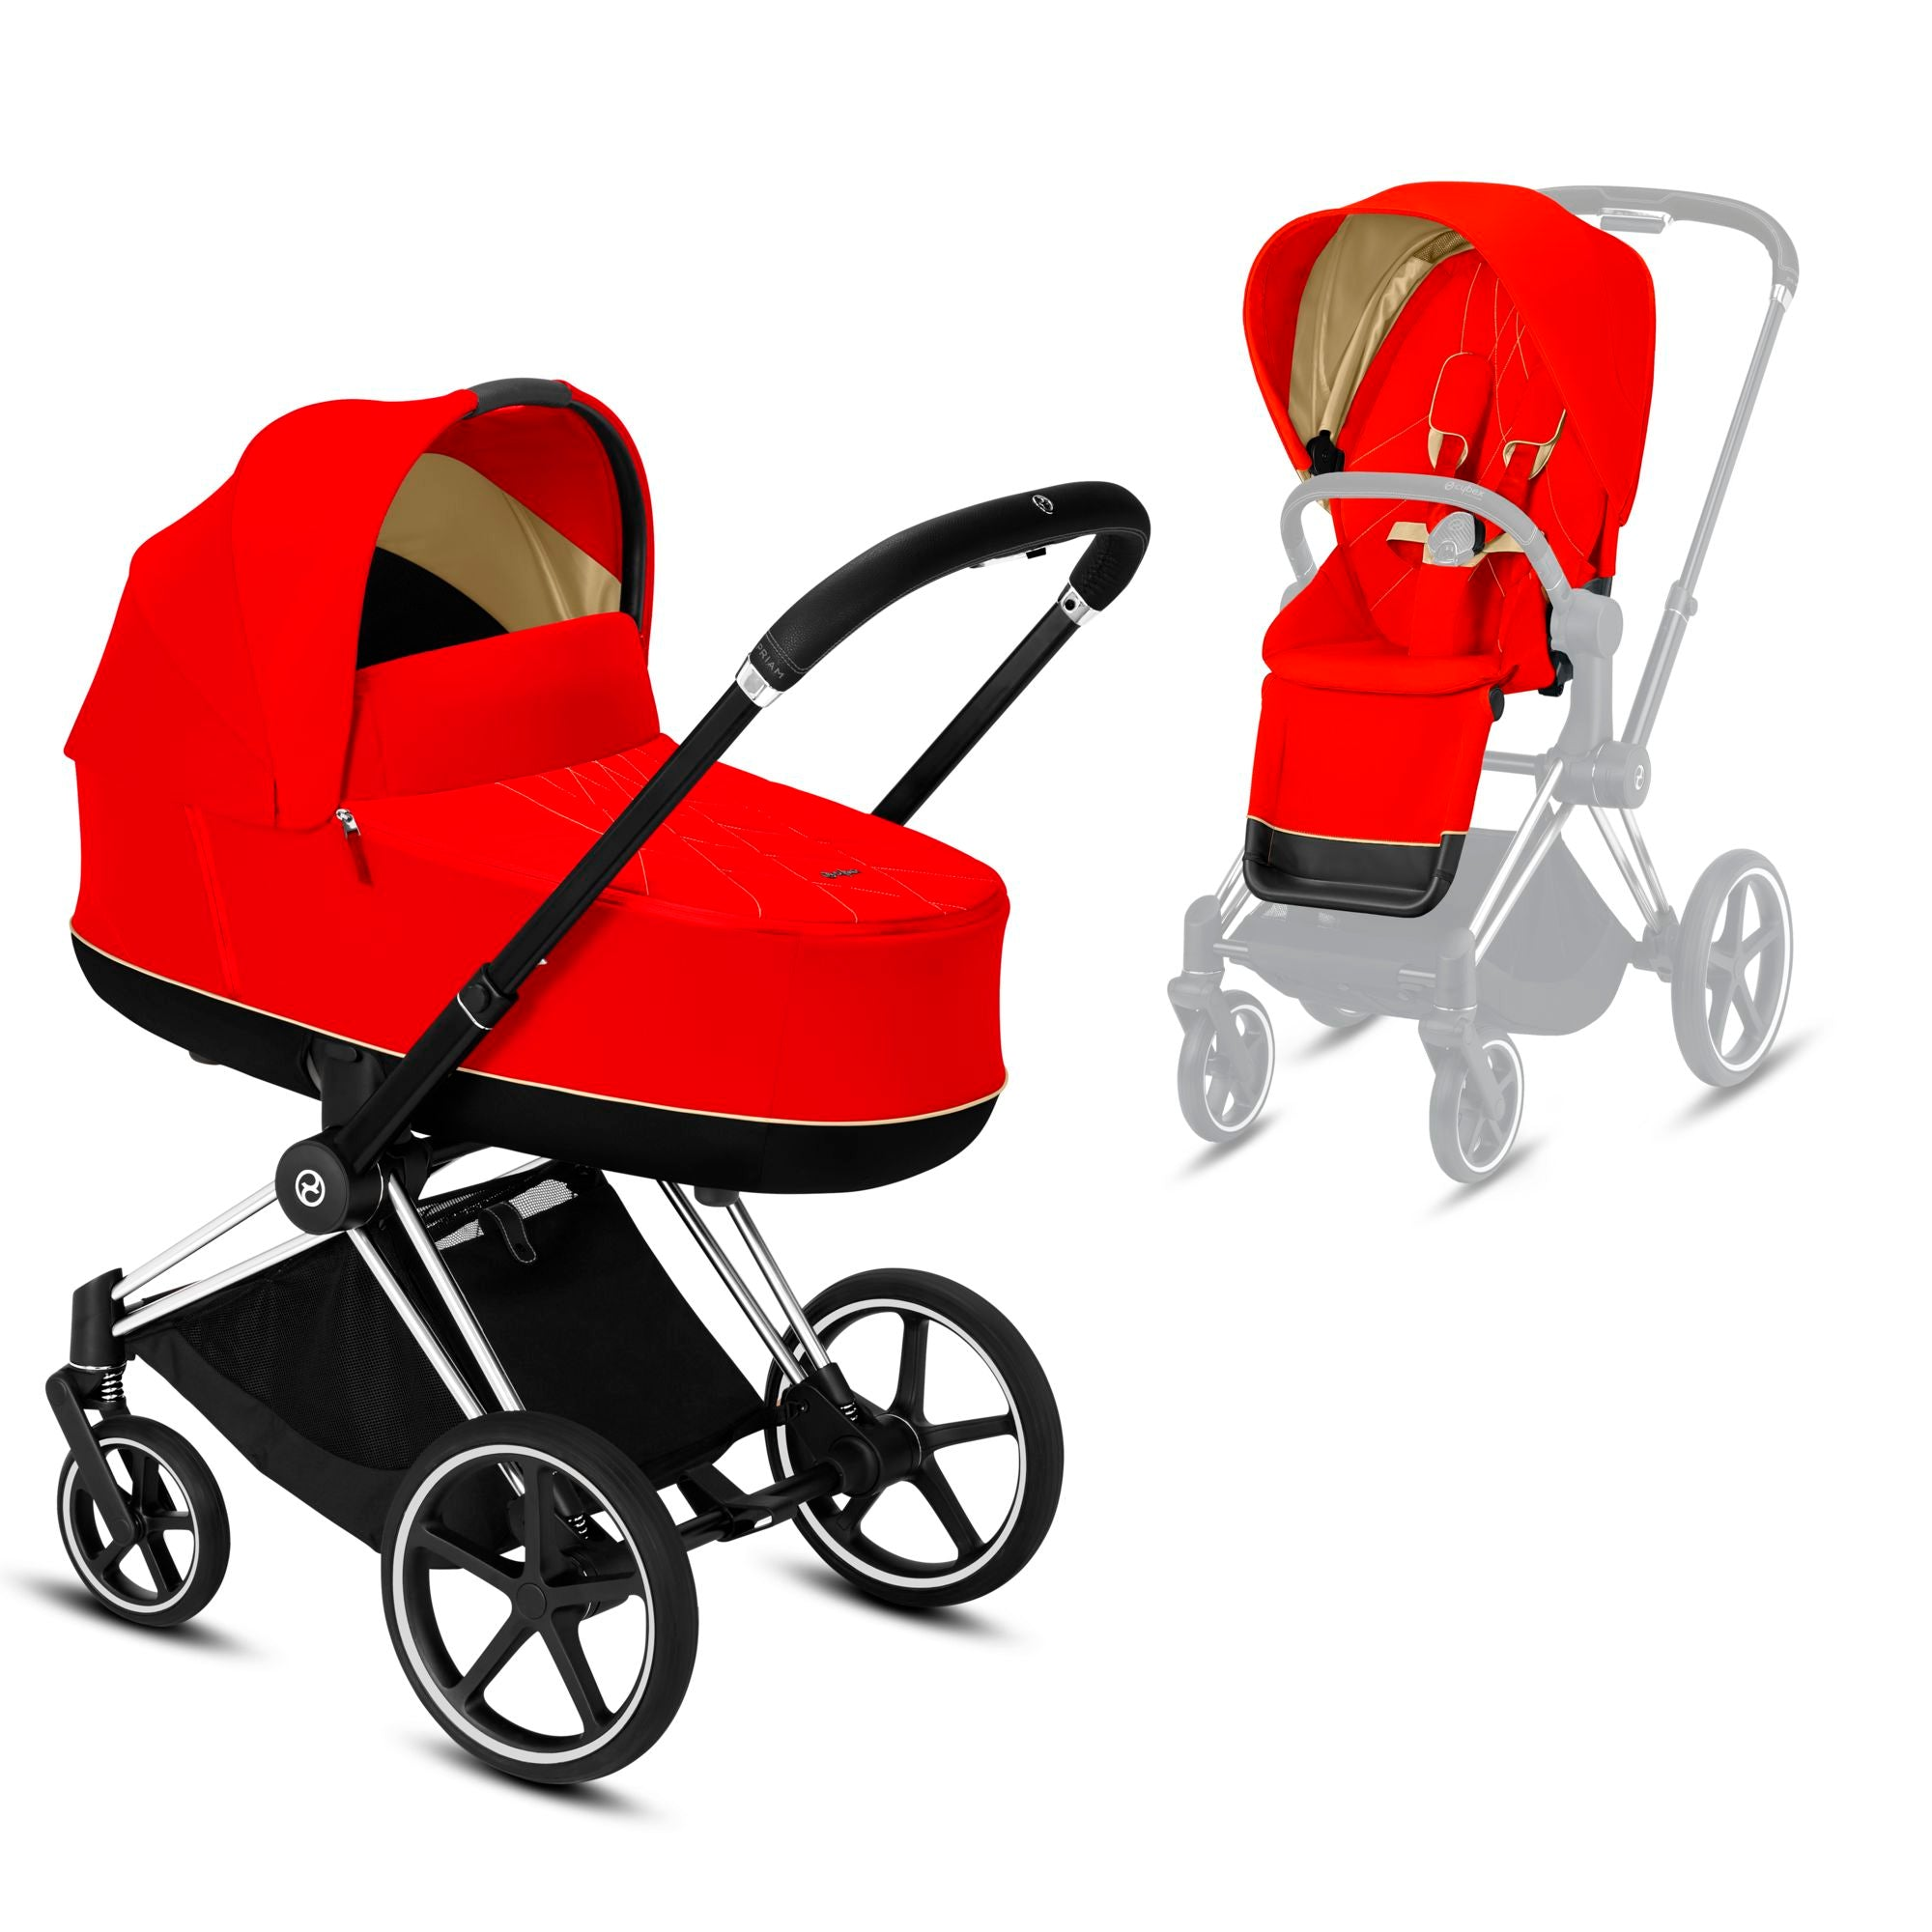 CYBEX Priam Carry cot 2 in 1 +  Chrome frame